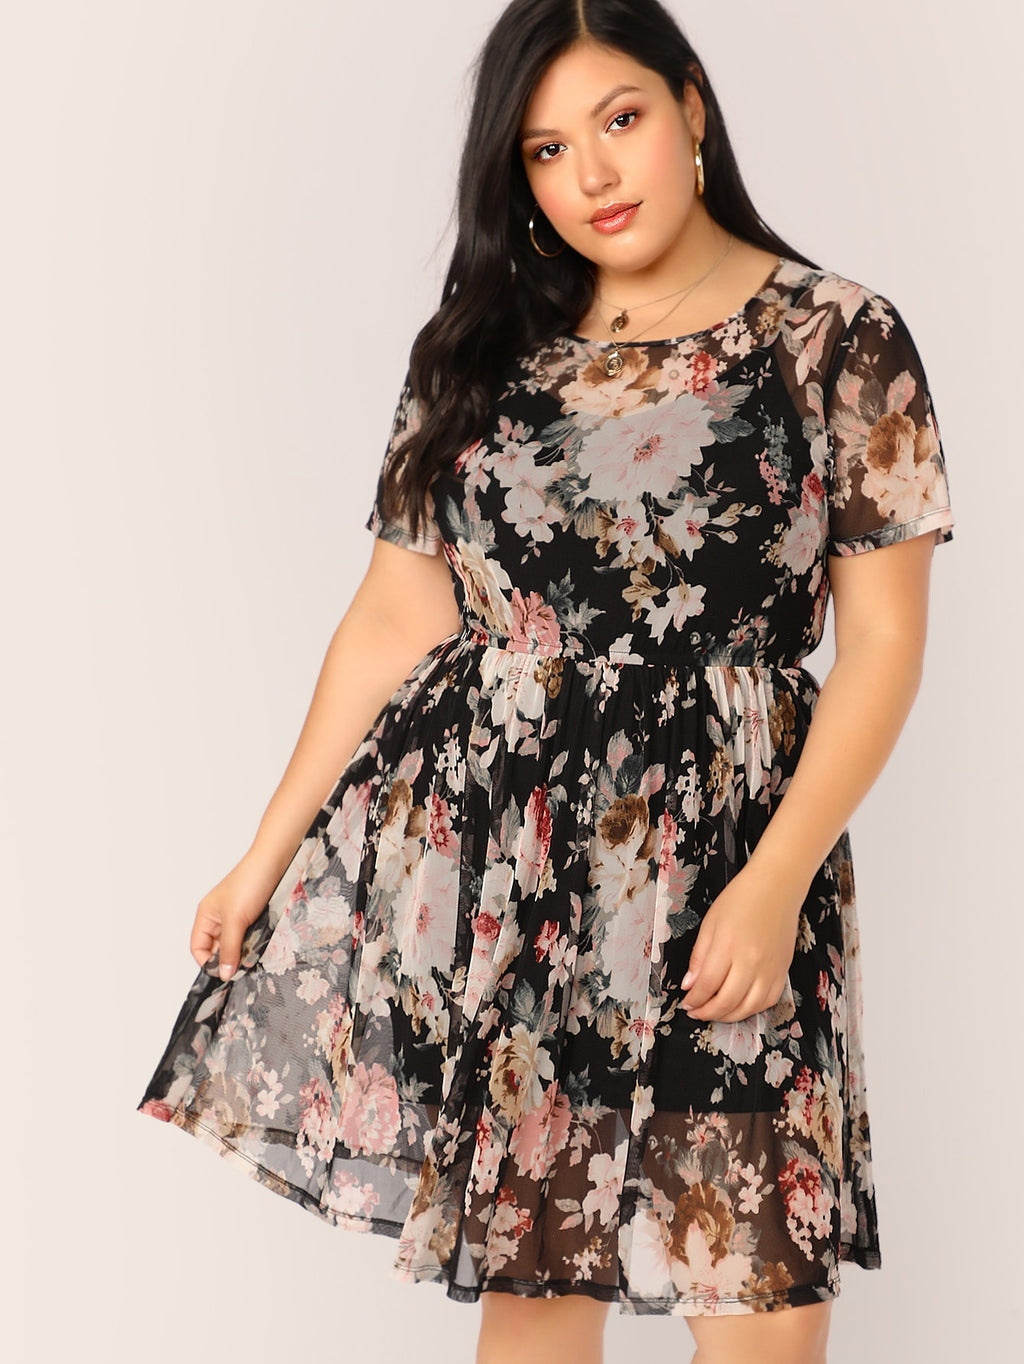 Plus Size Sheer Sunny Floral Print Dress